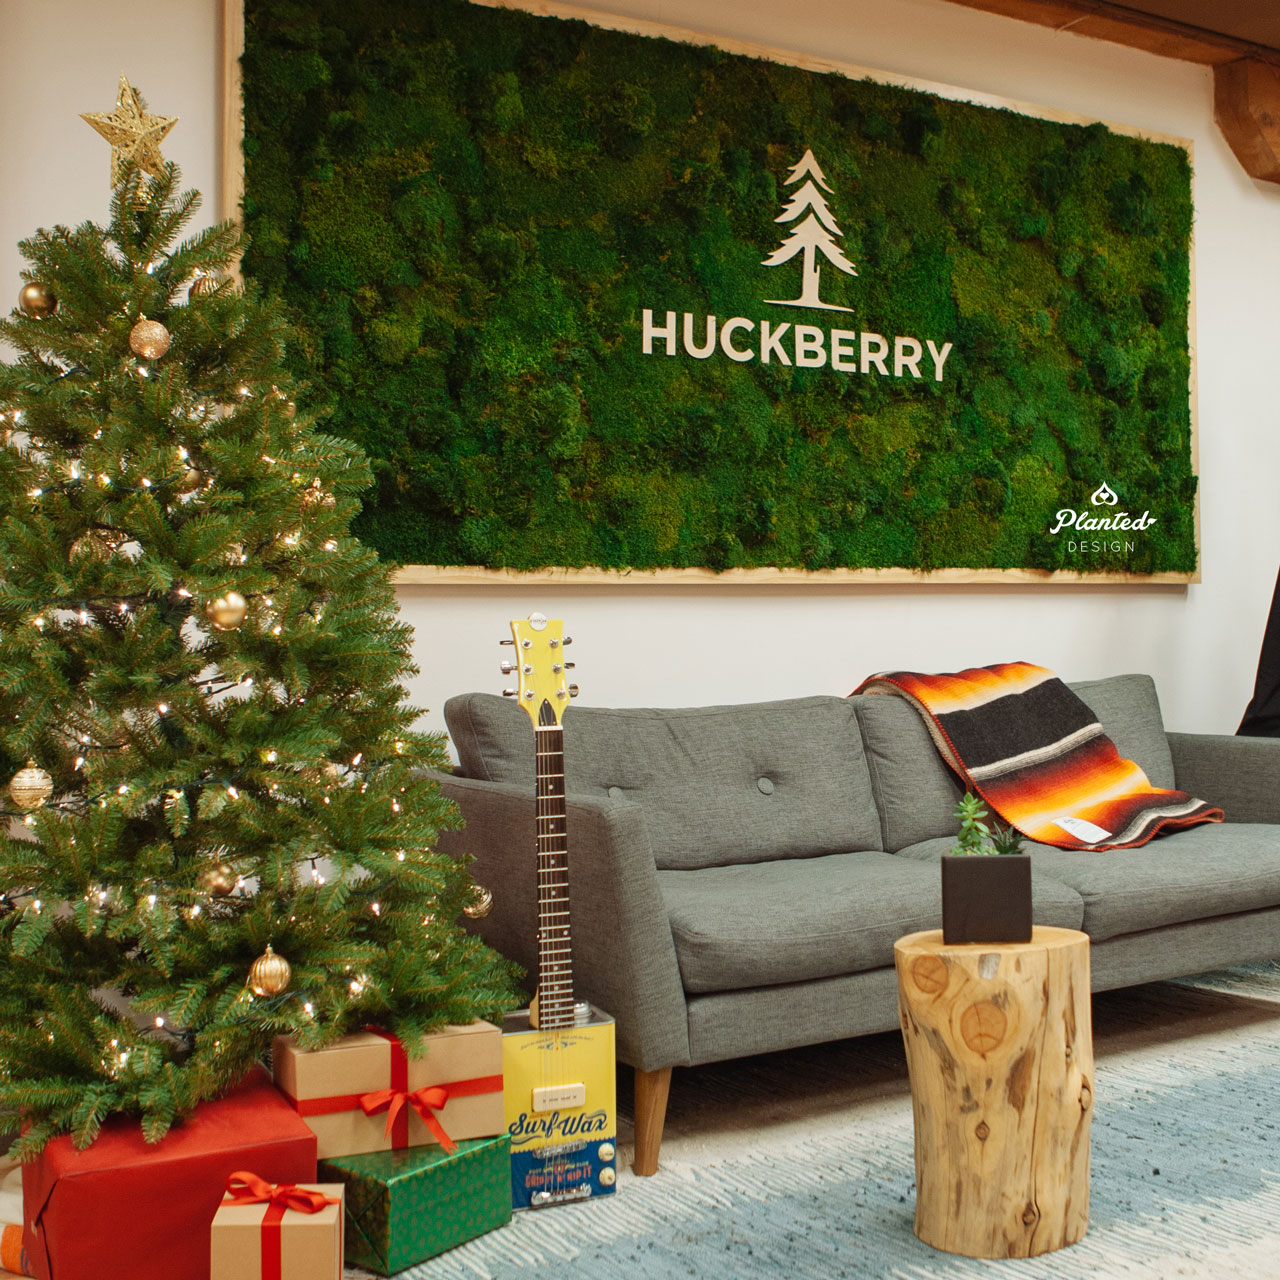 Huckberry  - Moss Wall